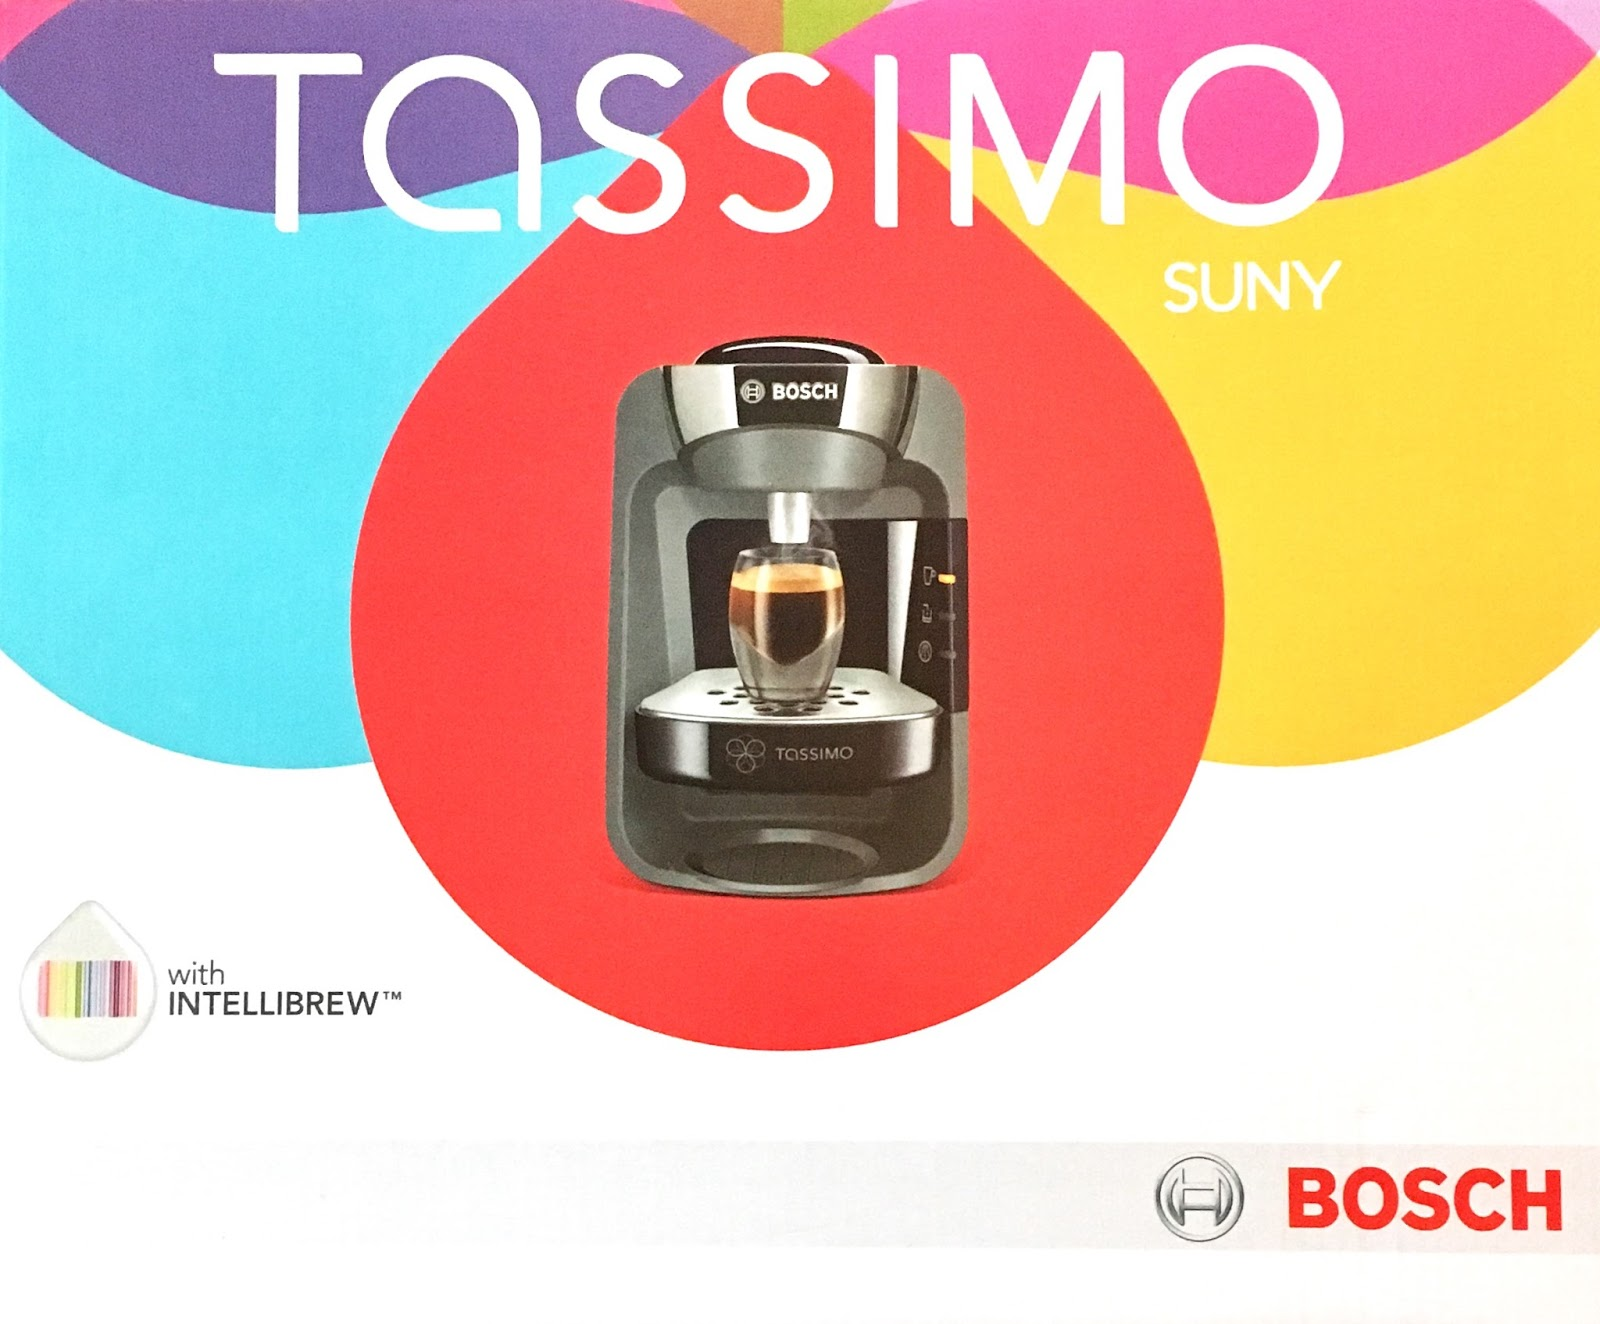 Bosch Tassimo Coffee Maker Sainsburys : Coffee Lovers - Grab Yourself A Bargain! - Em s Mixed Bag